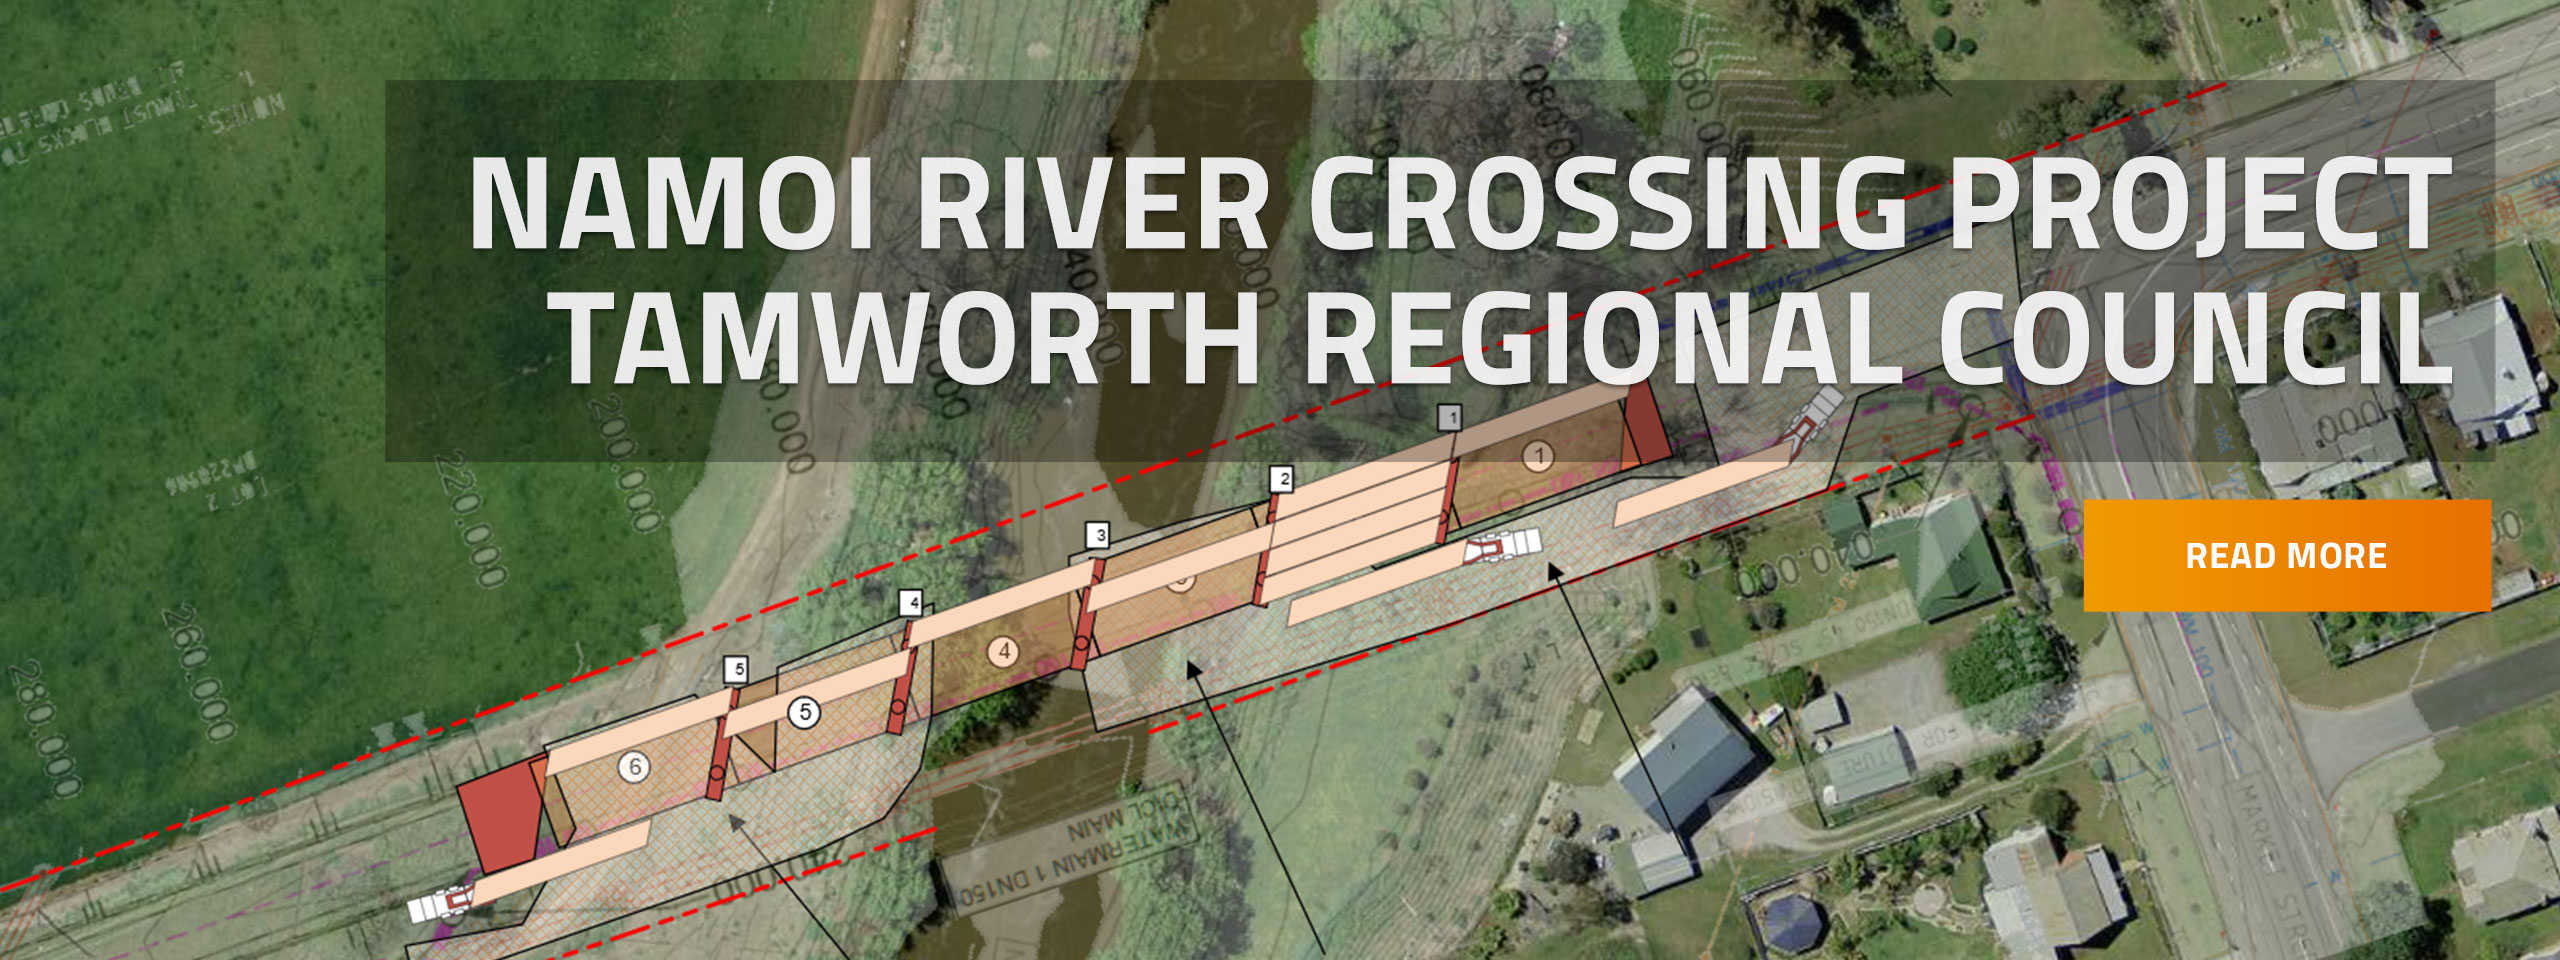 namoi-river-crossing-project-tamworth-regional-council